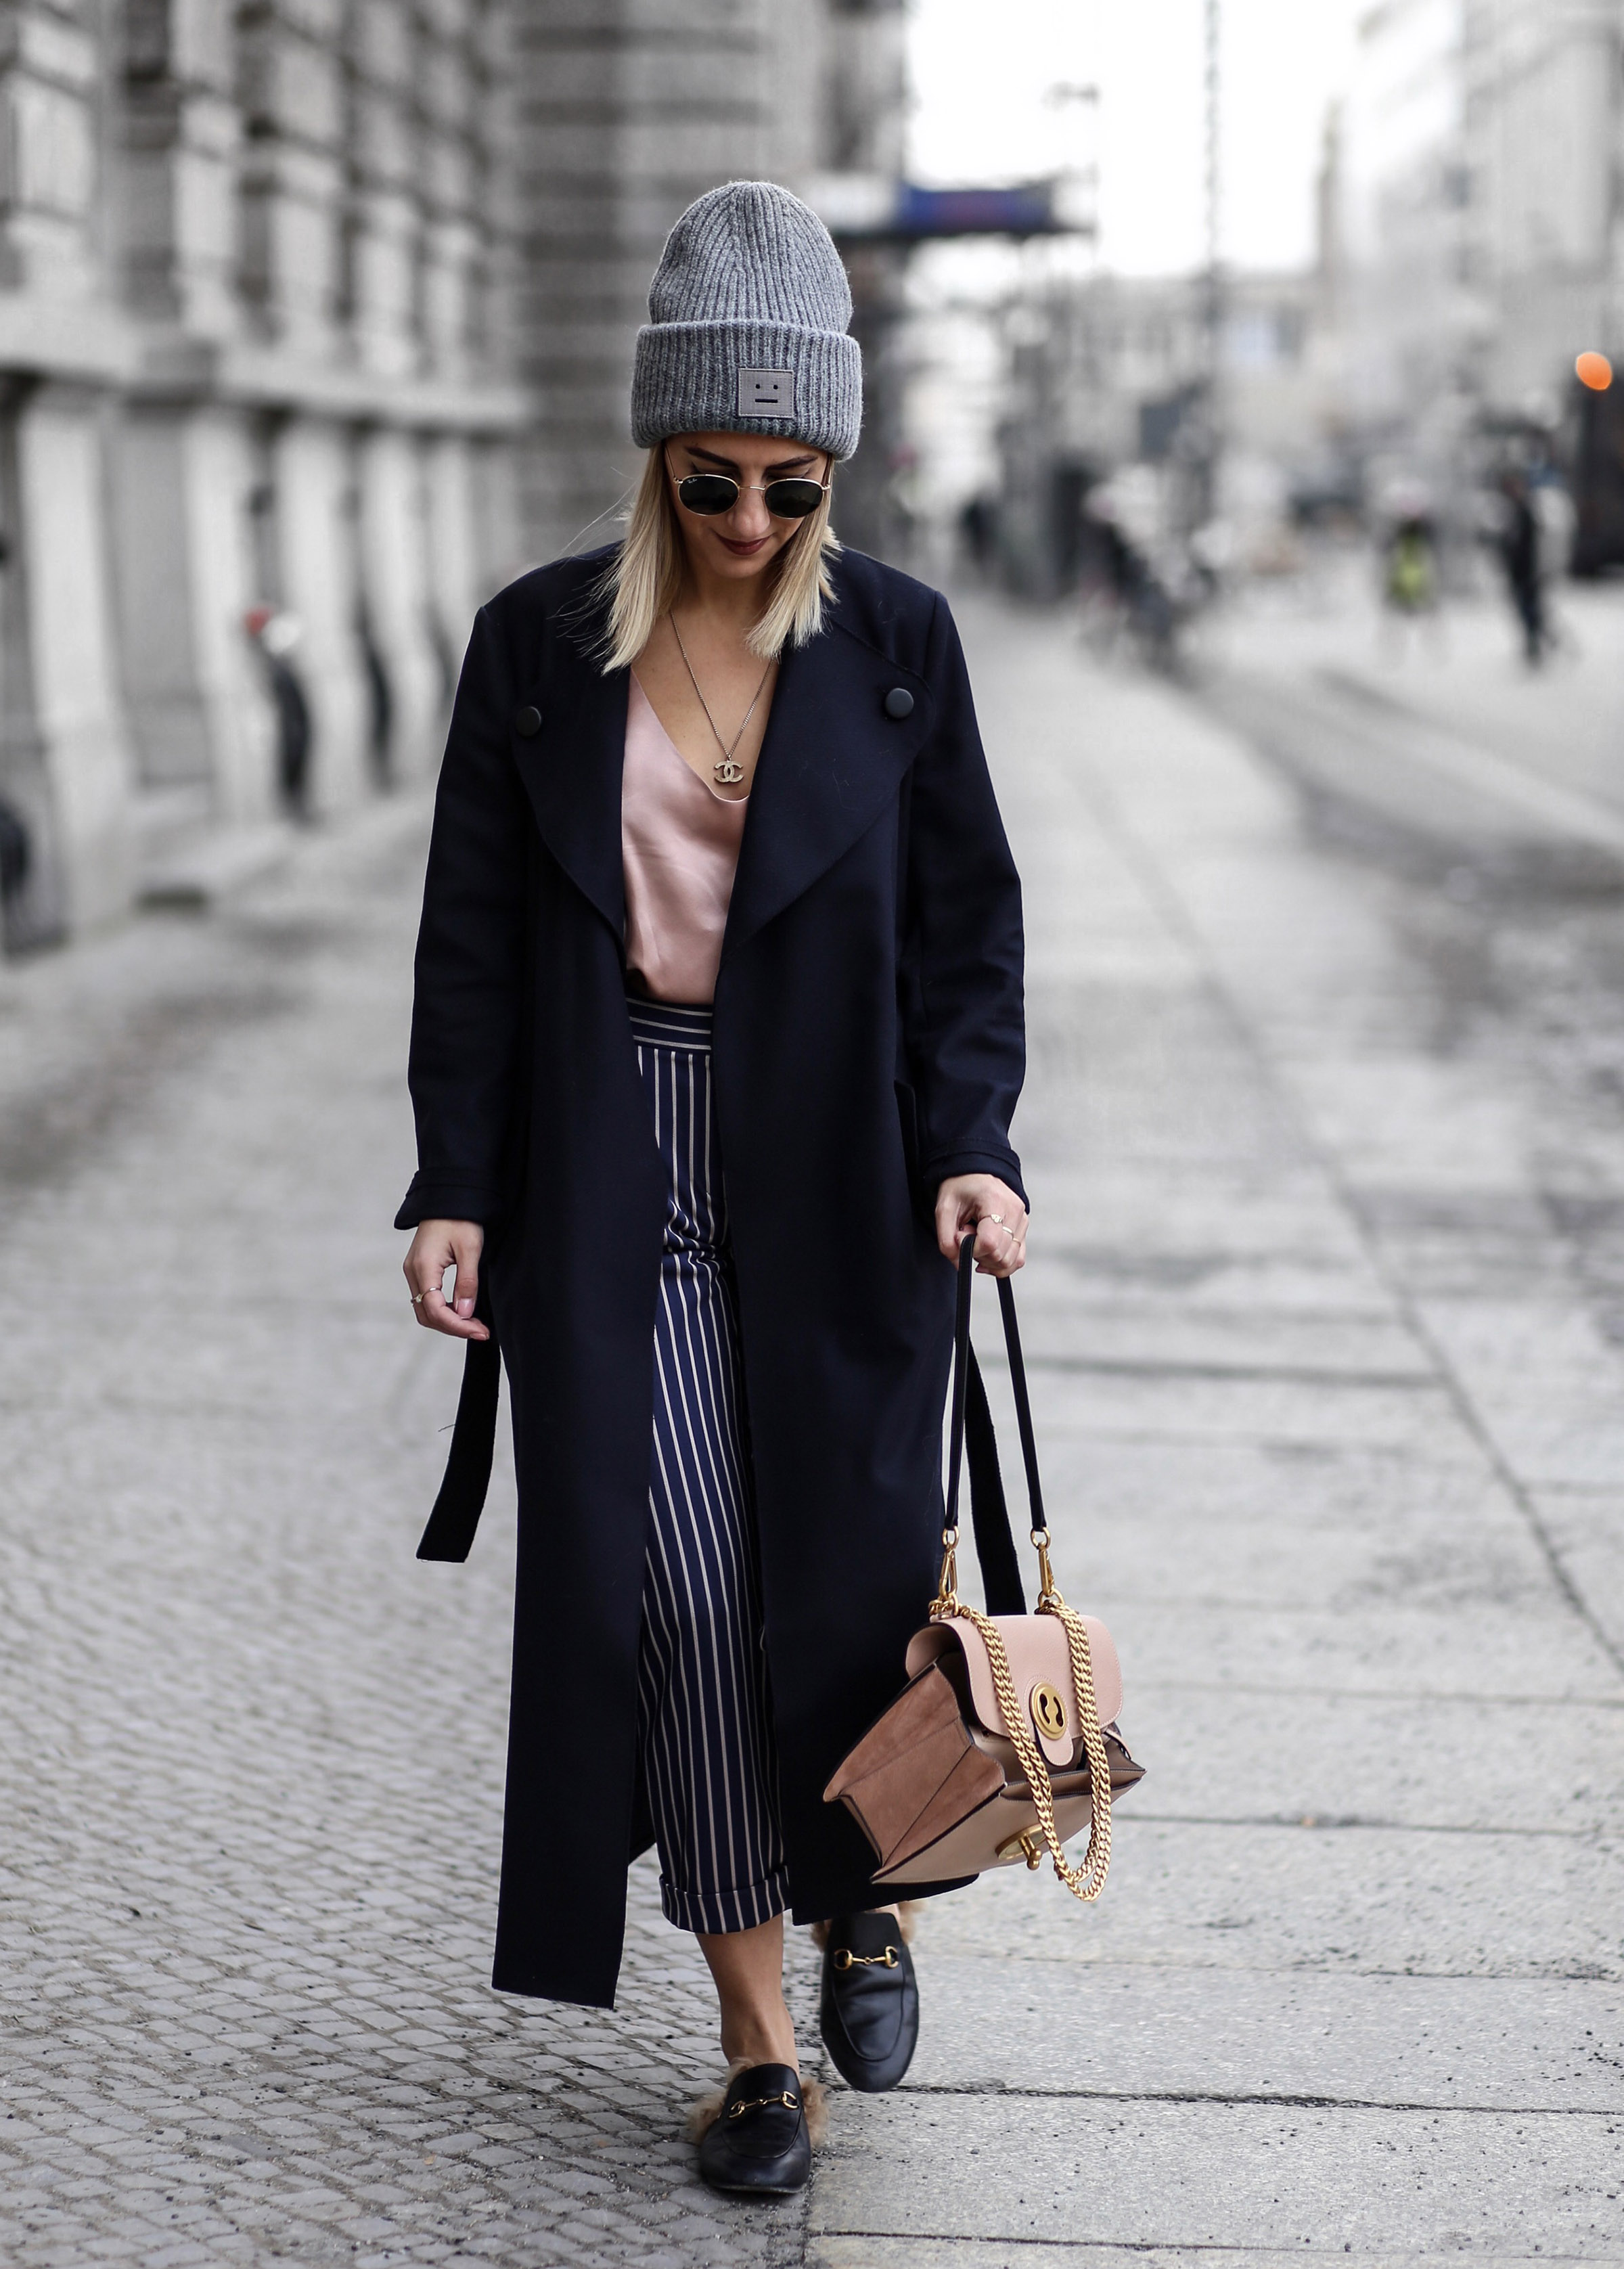 acne_beanie_grey street_style_belrin_fashion_week chloé_bag_netaporter chanel_necklace aylin_koenig_fashion_blog gucci_princetown_loafer_black ...